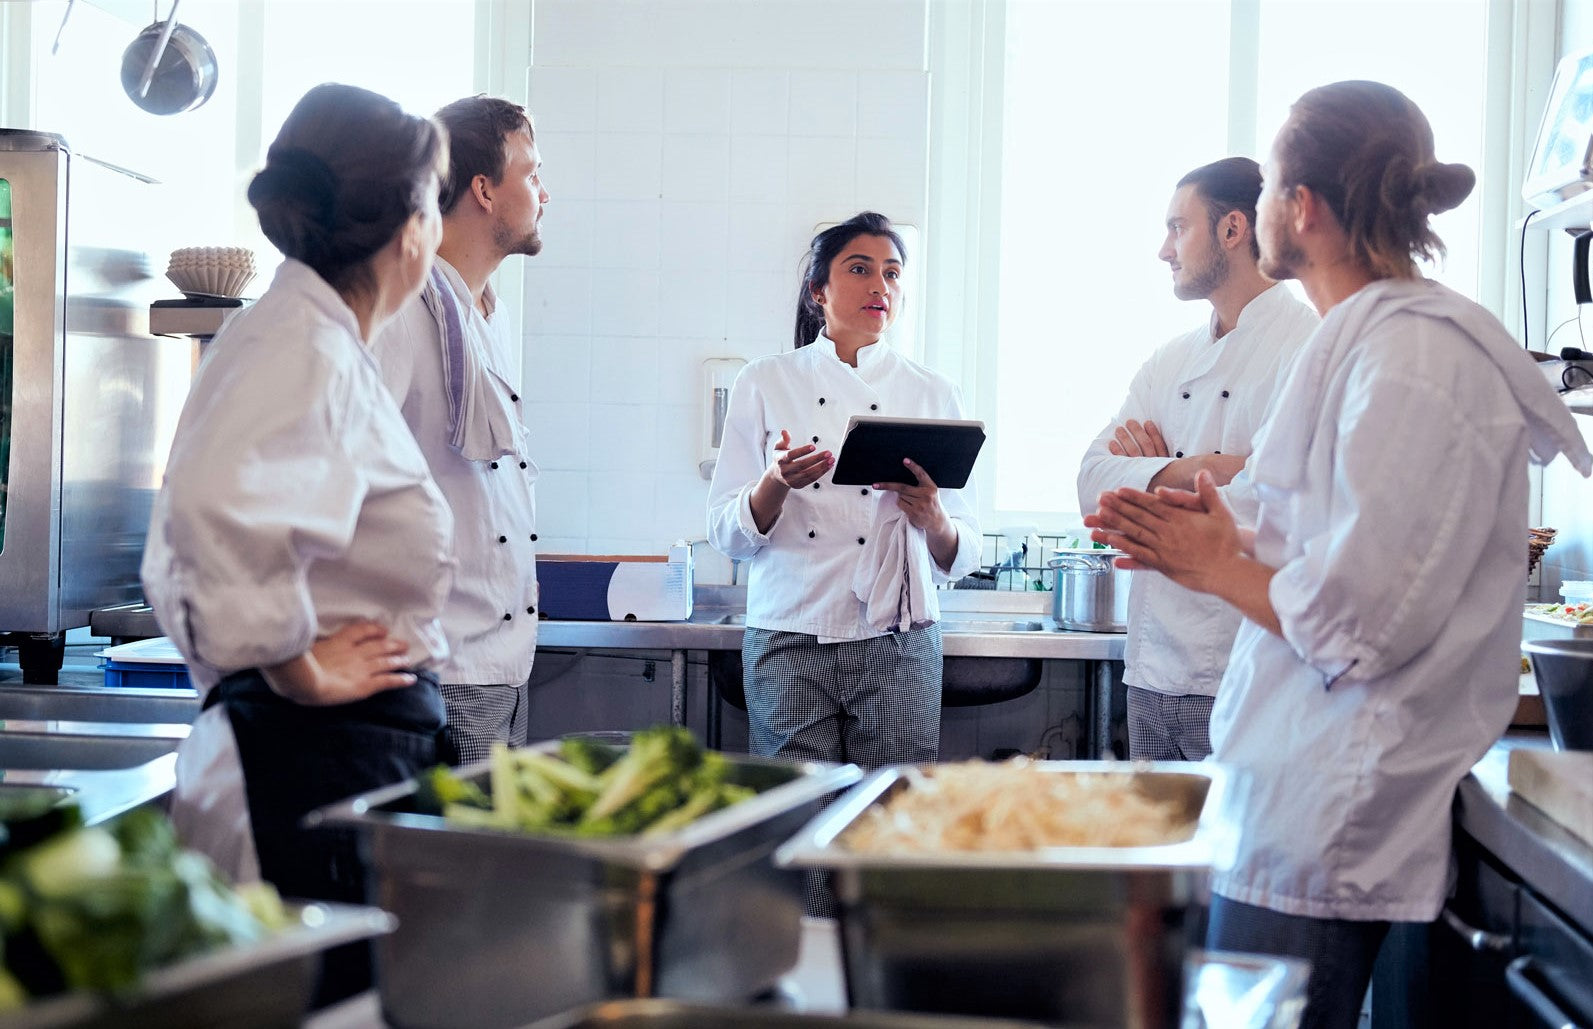 kitchen staff communicating with one another to work out to reduce food costs